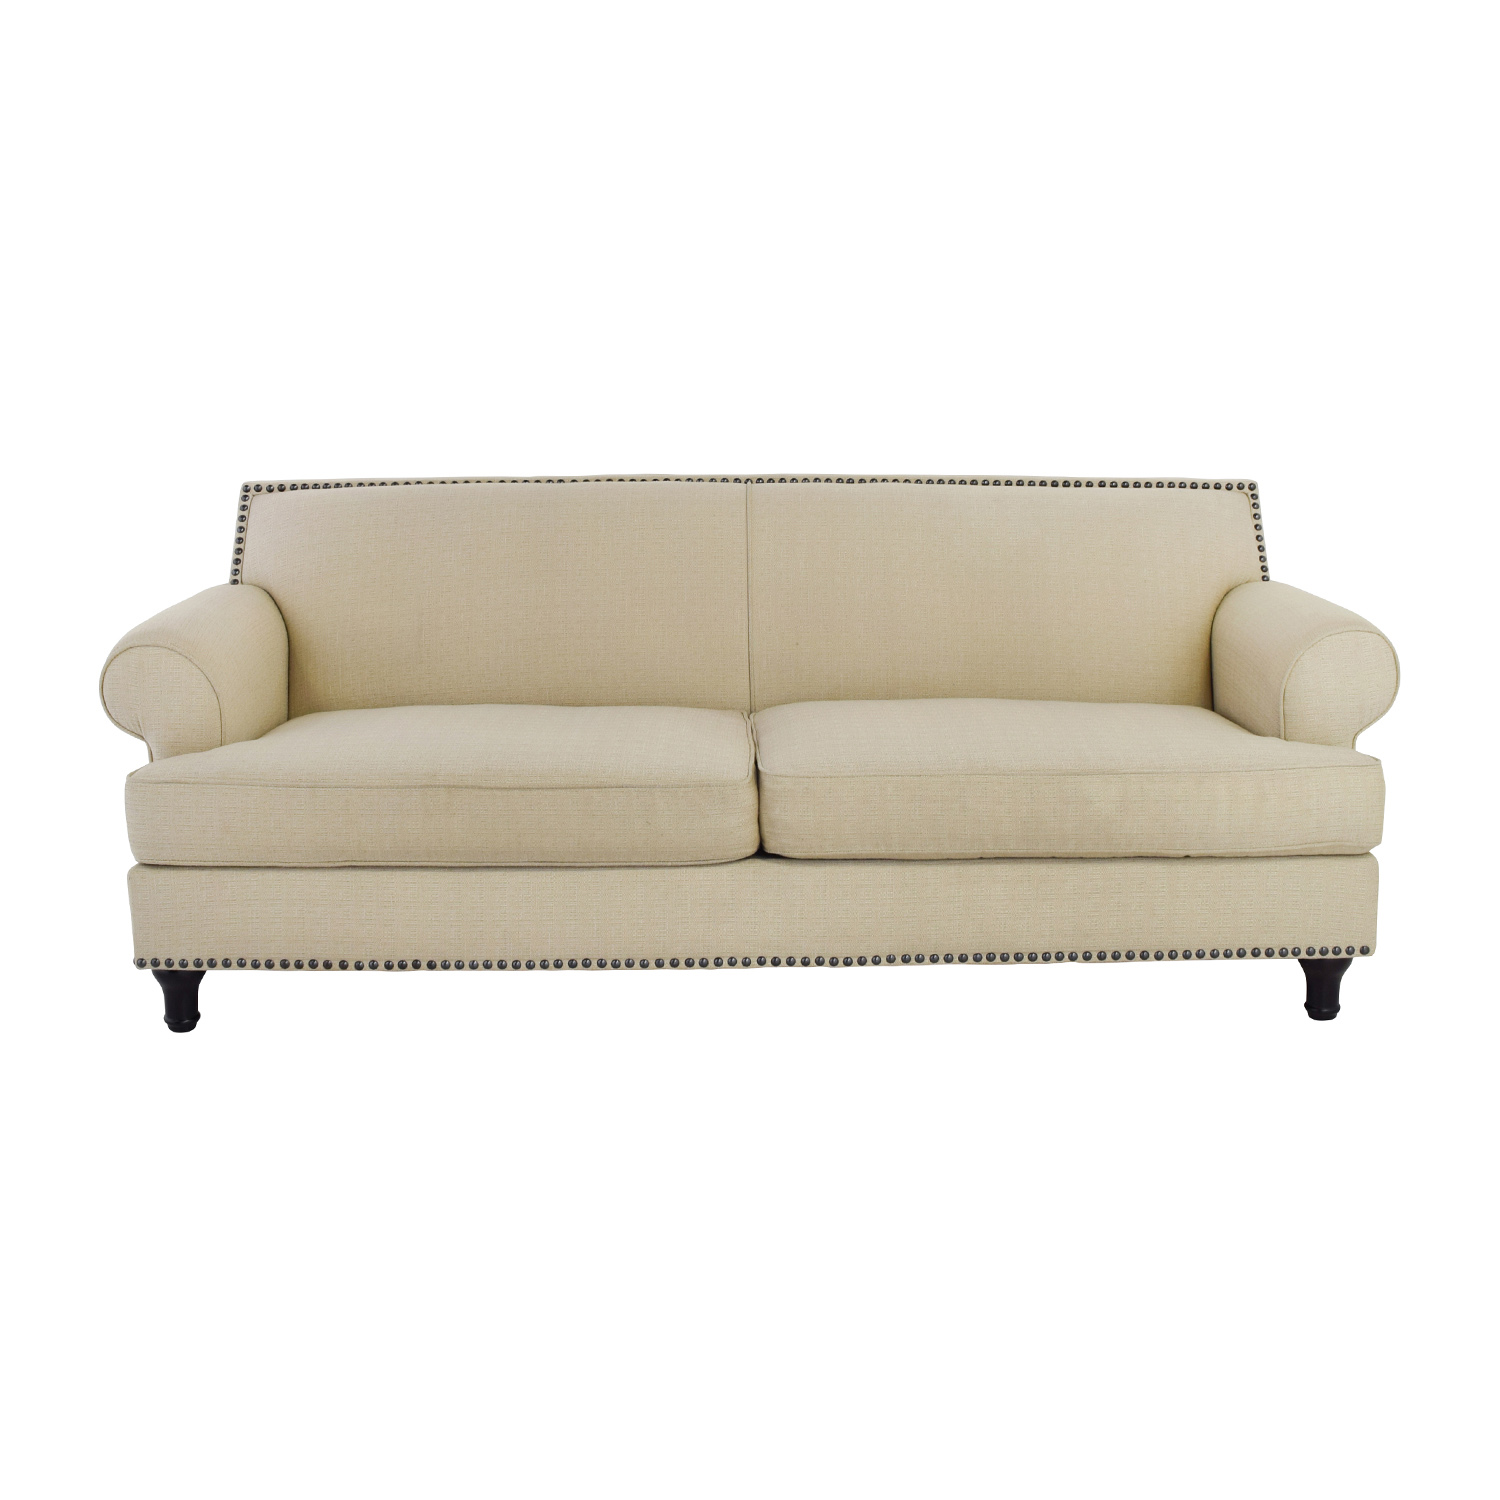 Pier 1 Pier 1 Carmen Tan Couch with Studs Classic Sofas